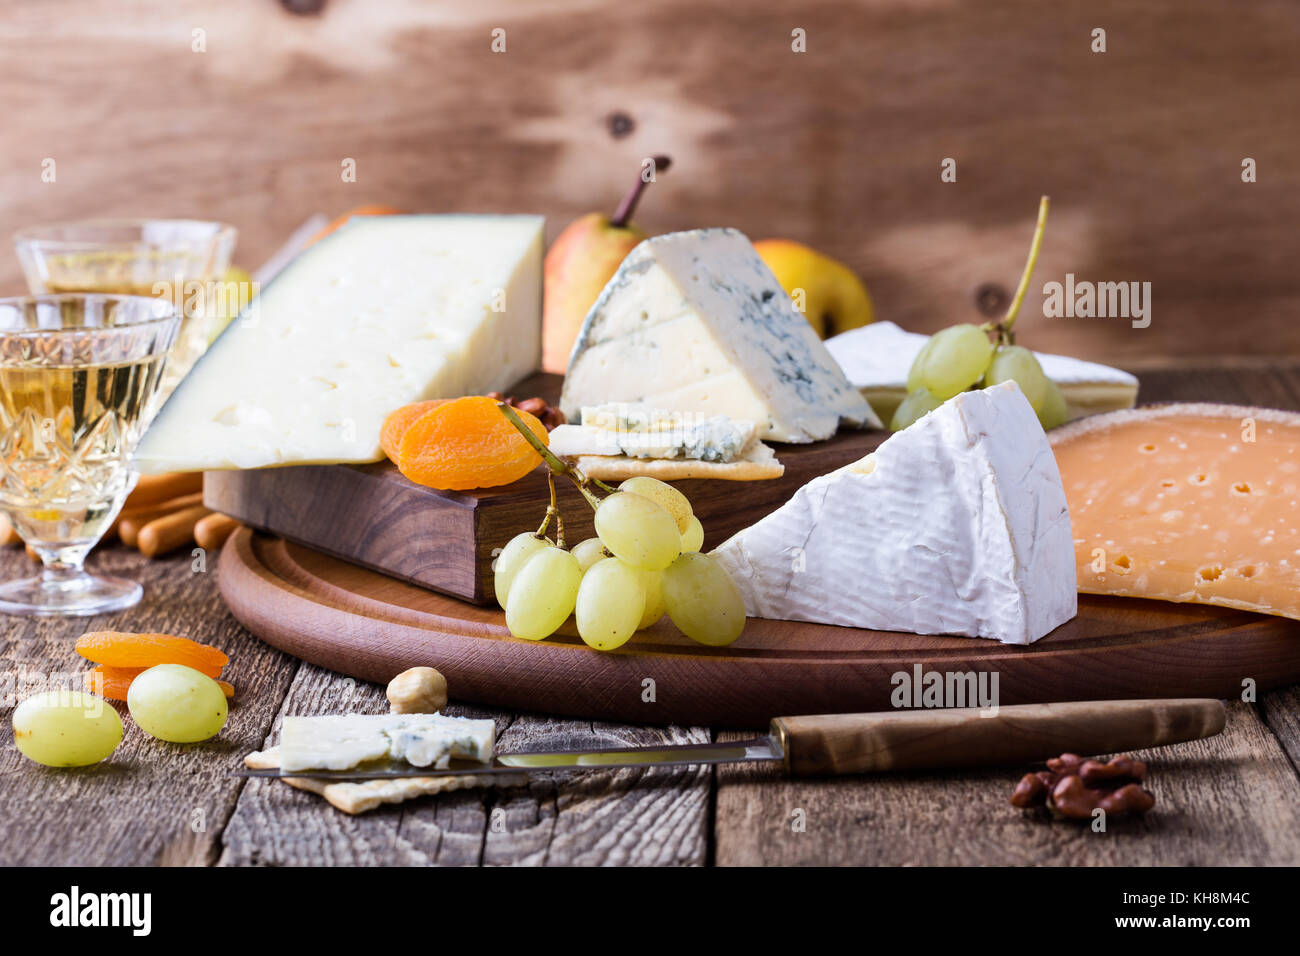 Cheese, fruit and wine wooden cutting board, delicious holiday appetizer on rustic table background - Stock Image